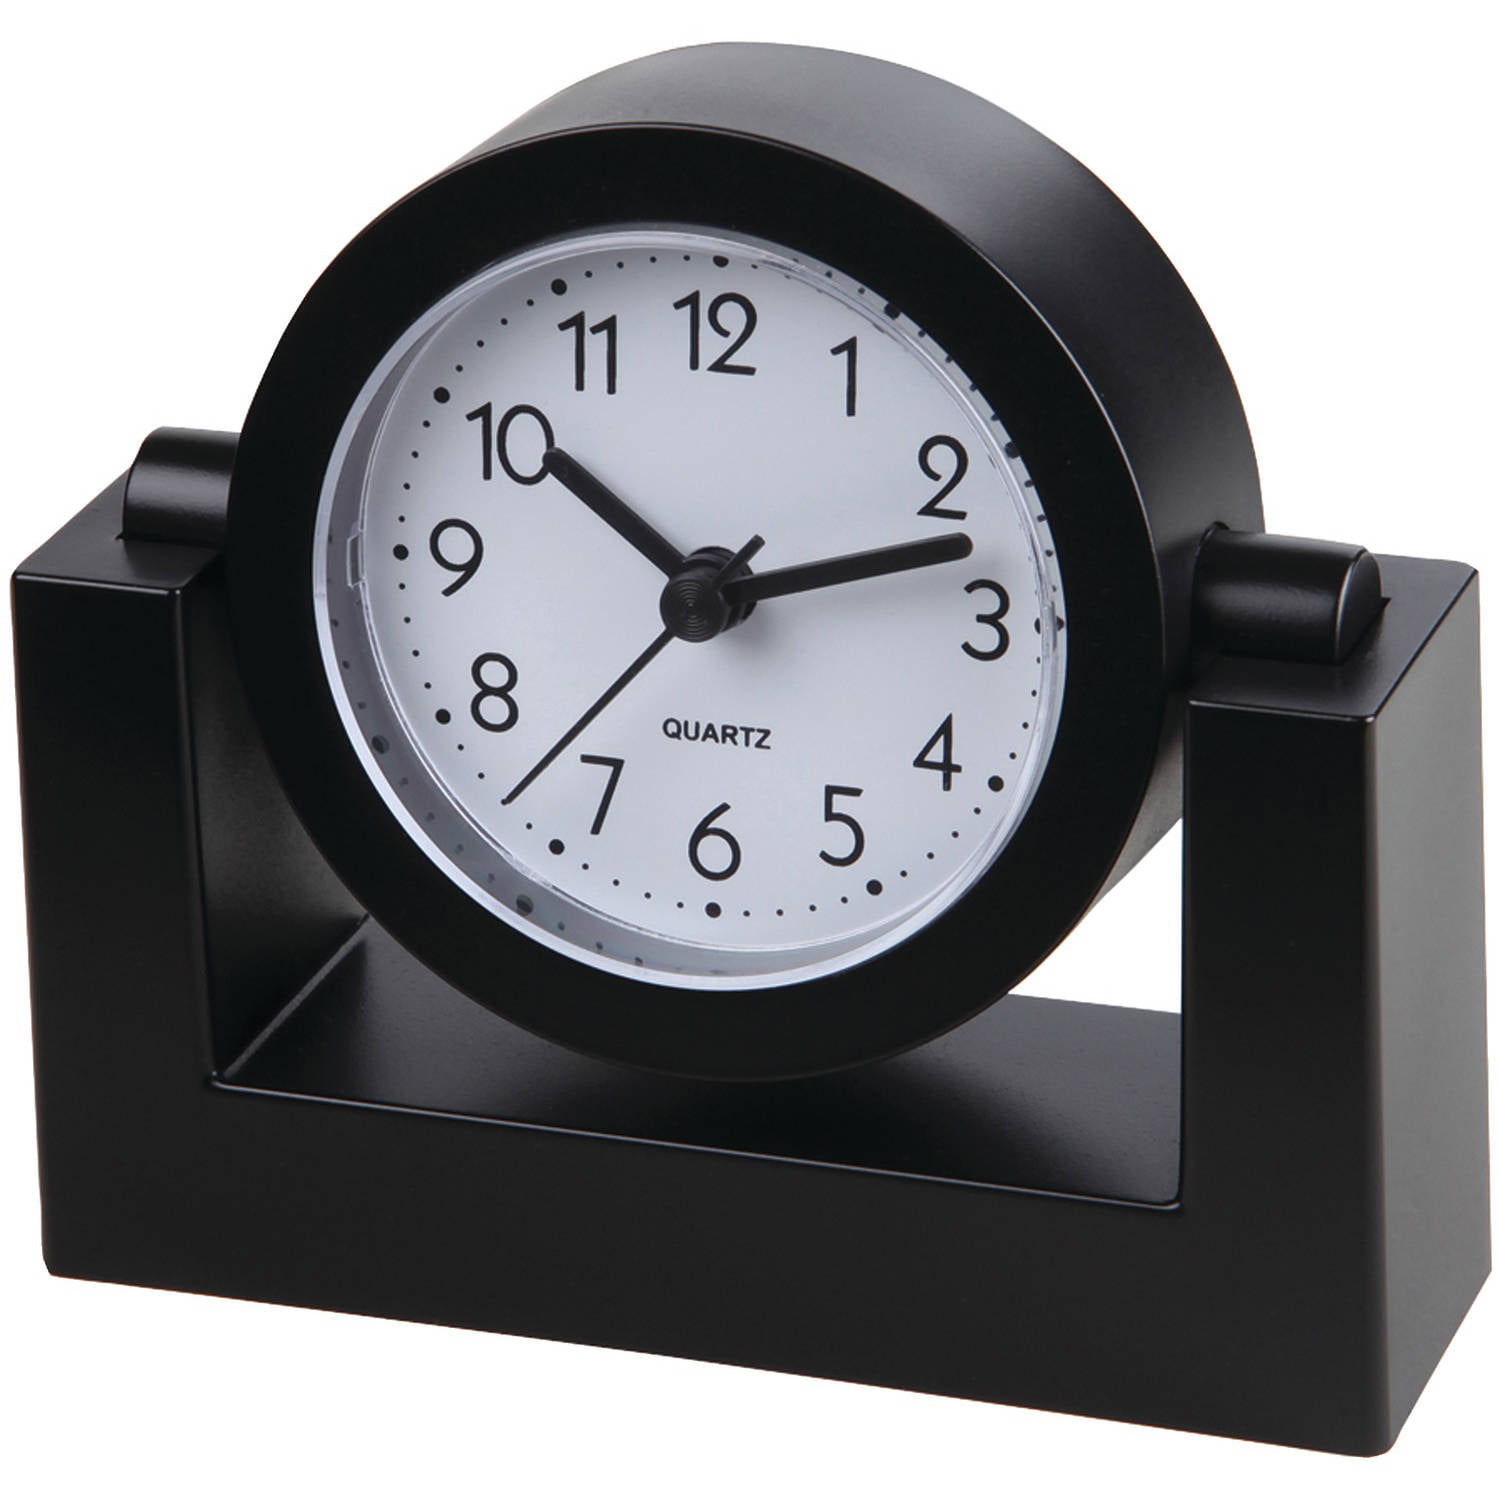 Clocks walmart desk and tabletop clocks amipublicfo Choice Image